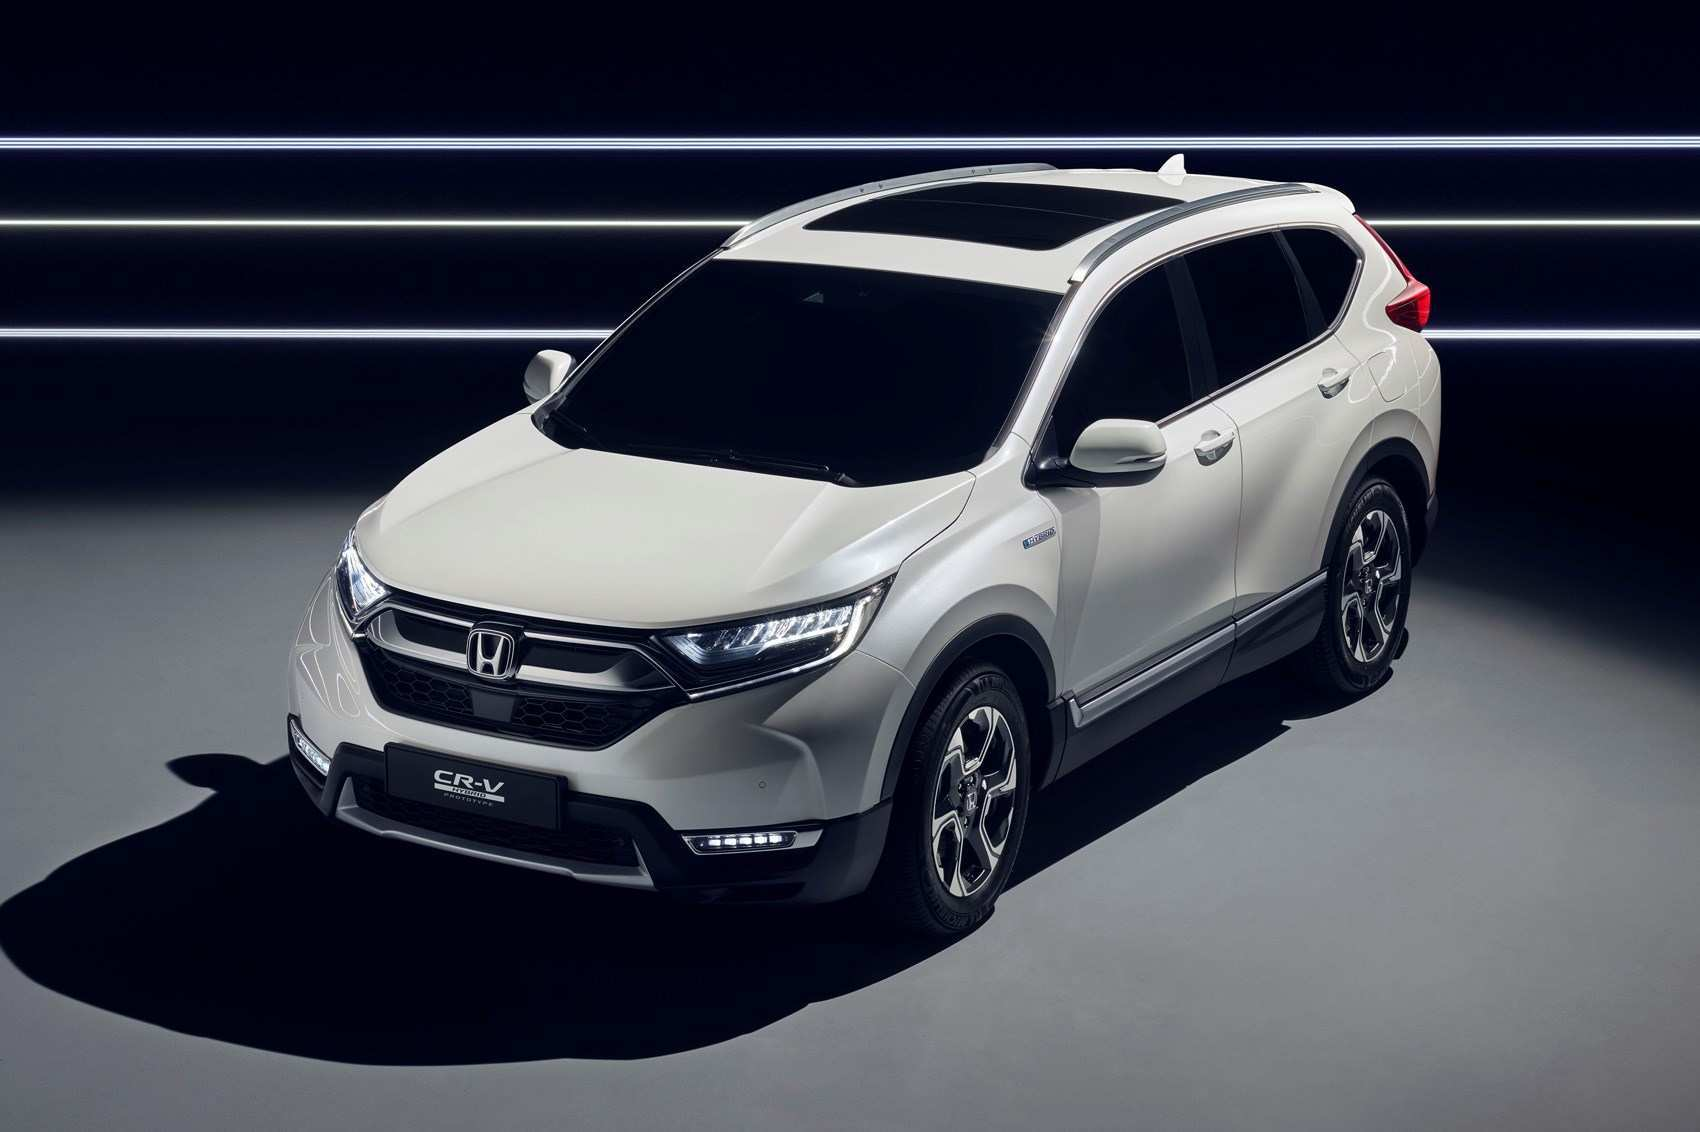 55 Concept of Honda Crv 2020 Redesign New Review by Honda Crv 2020 Redesign